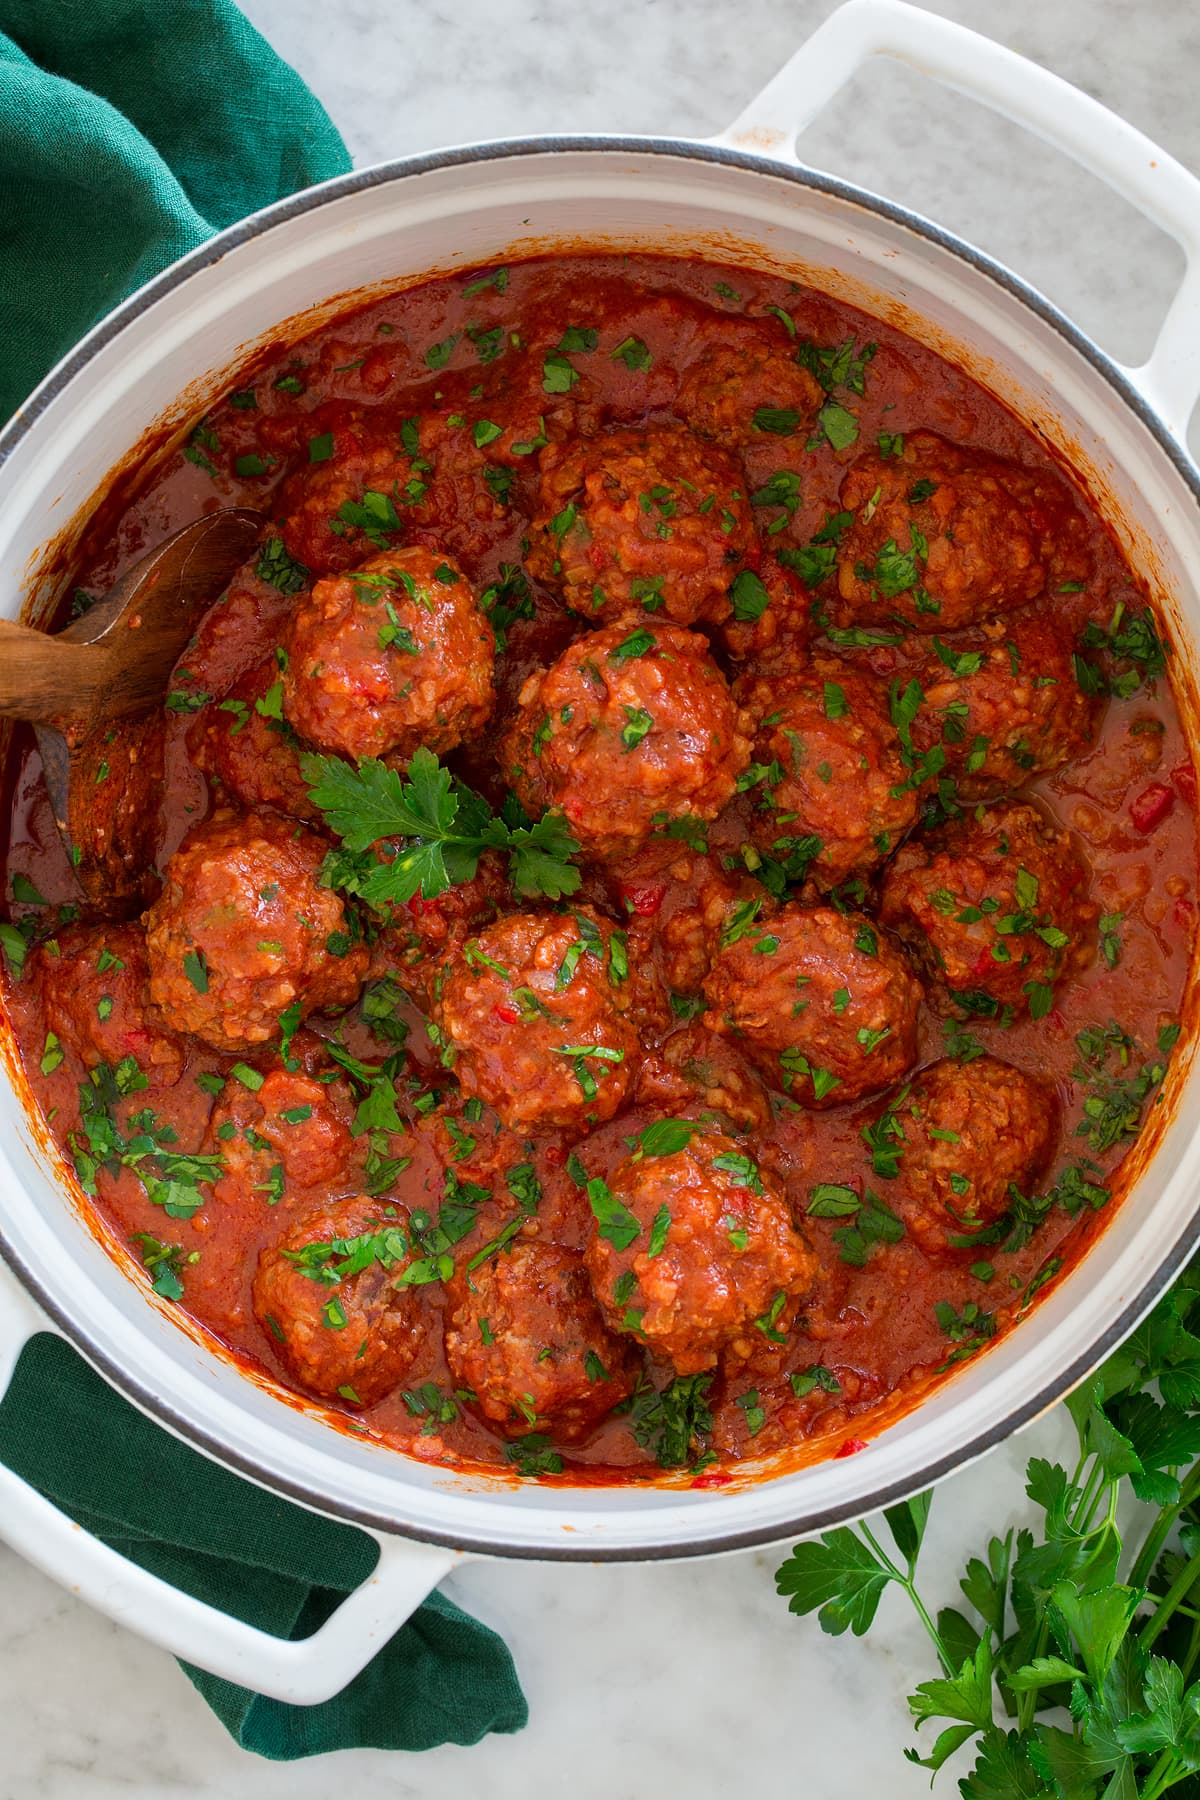 Overhead photo of Porcupine Meatballs in tomato sauce in a large white pot set over a marble surface with a green cloth to the side.